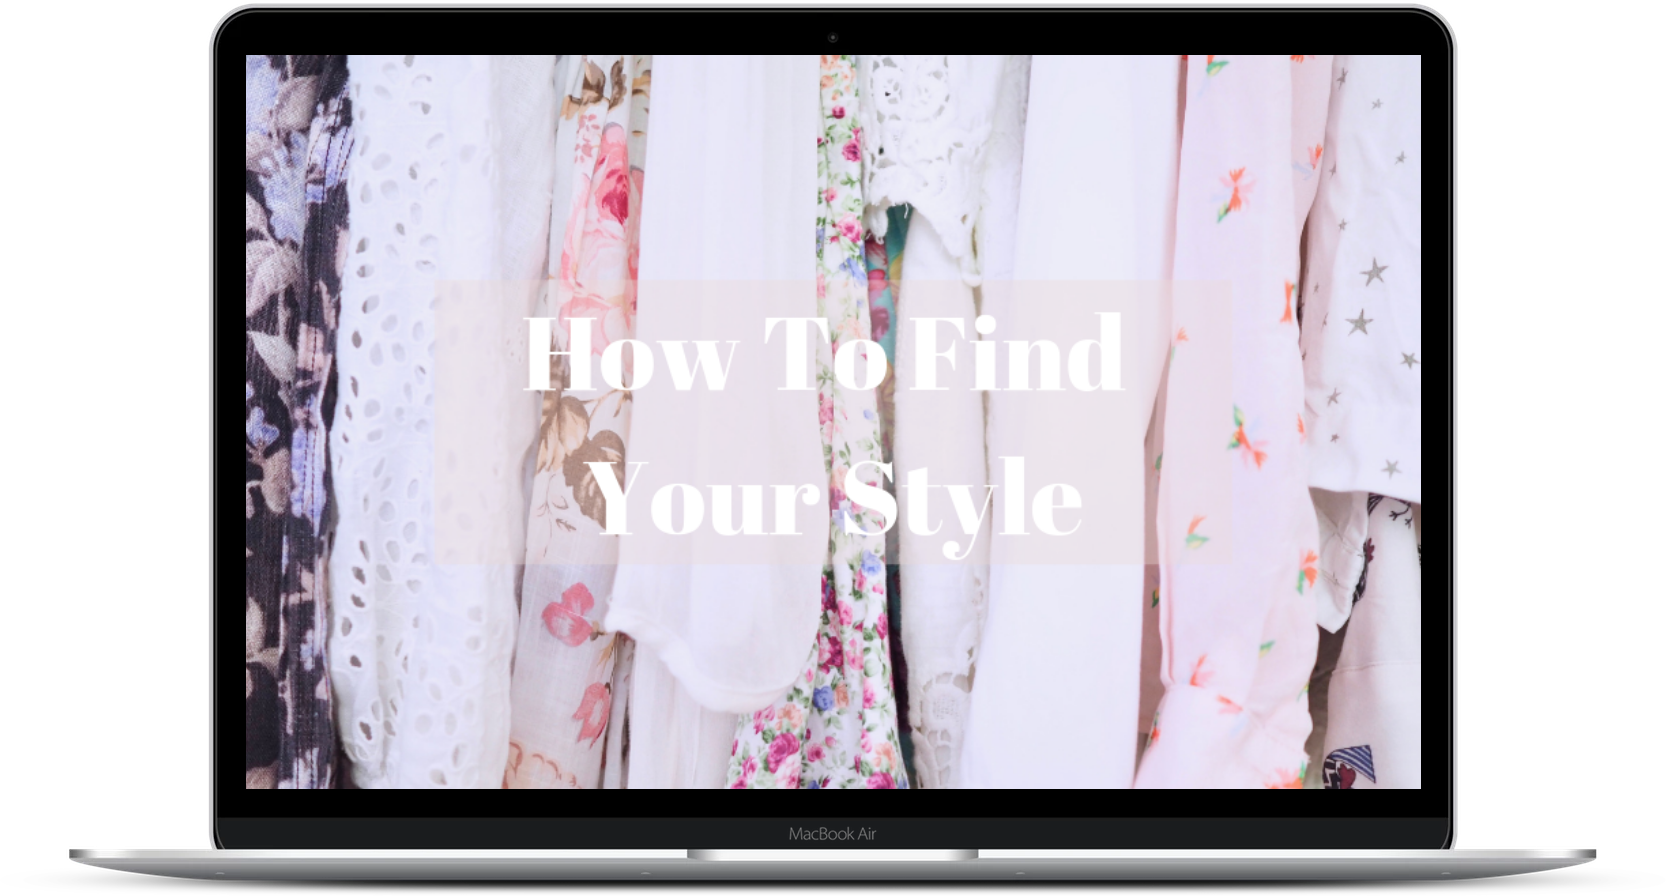 How To Find Your Style Course Mock Up1.png